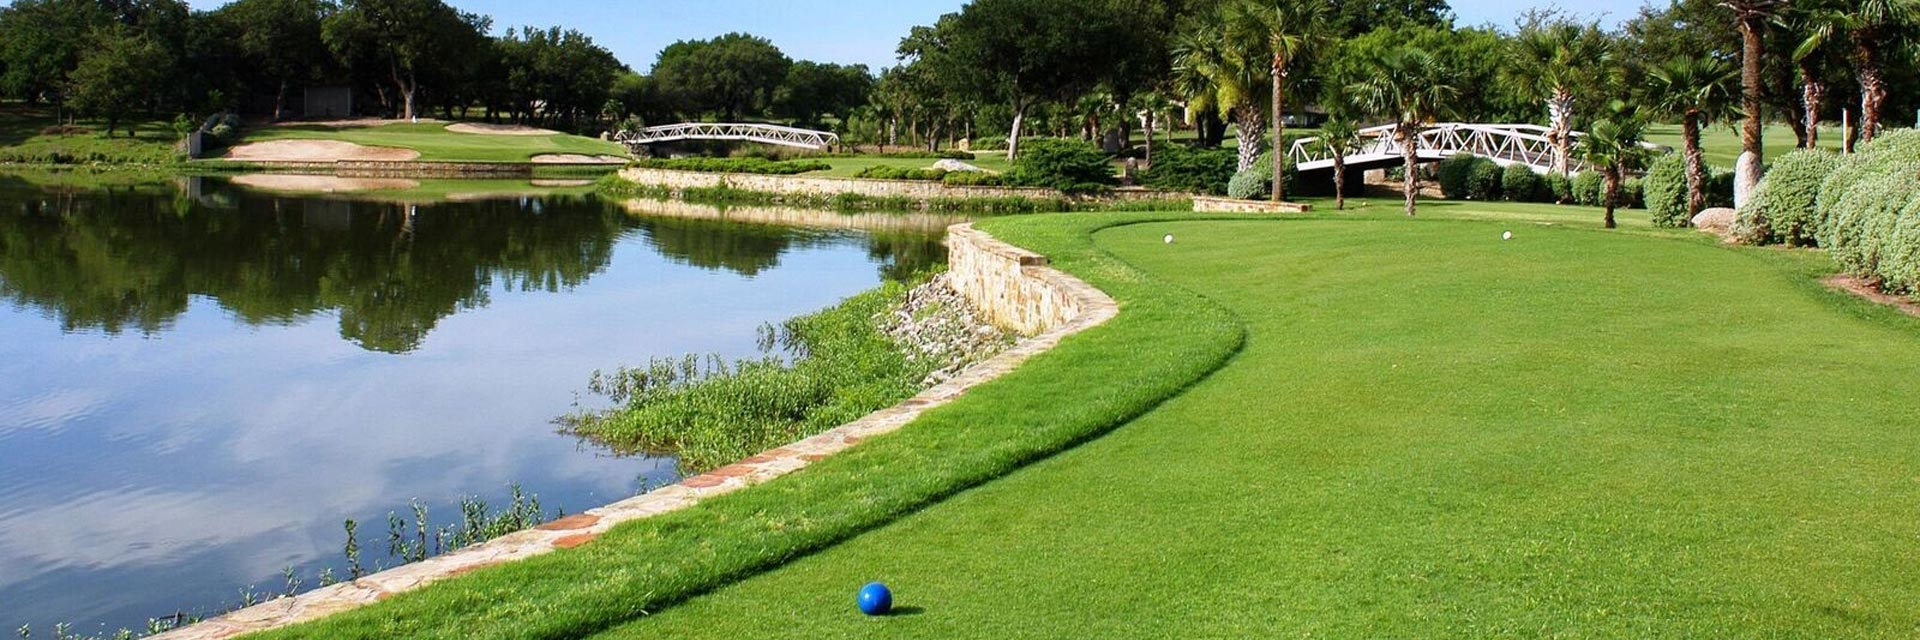 Austin - Horseshoe Bay, TX: Horseshoe Bay Stay and Play - Lodging, breakfast, and unlimited golf for $229 per person, per day!